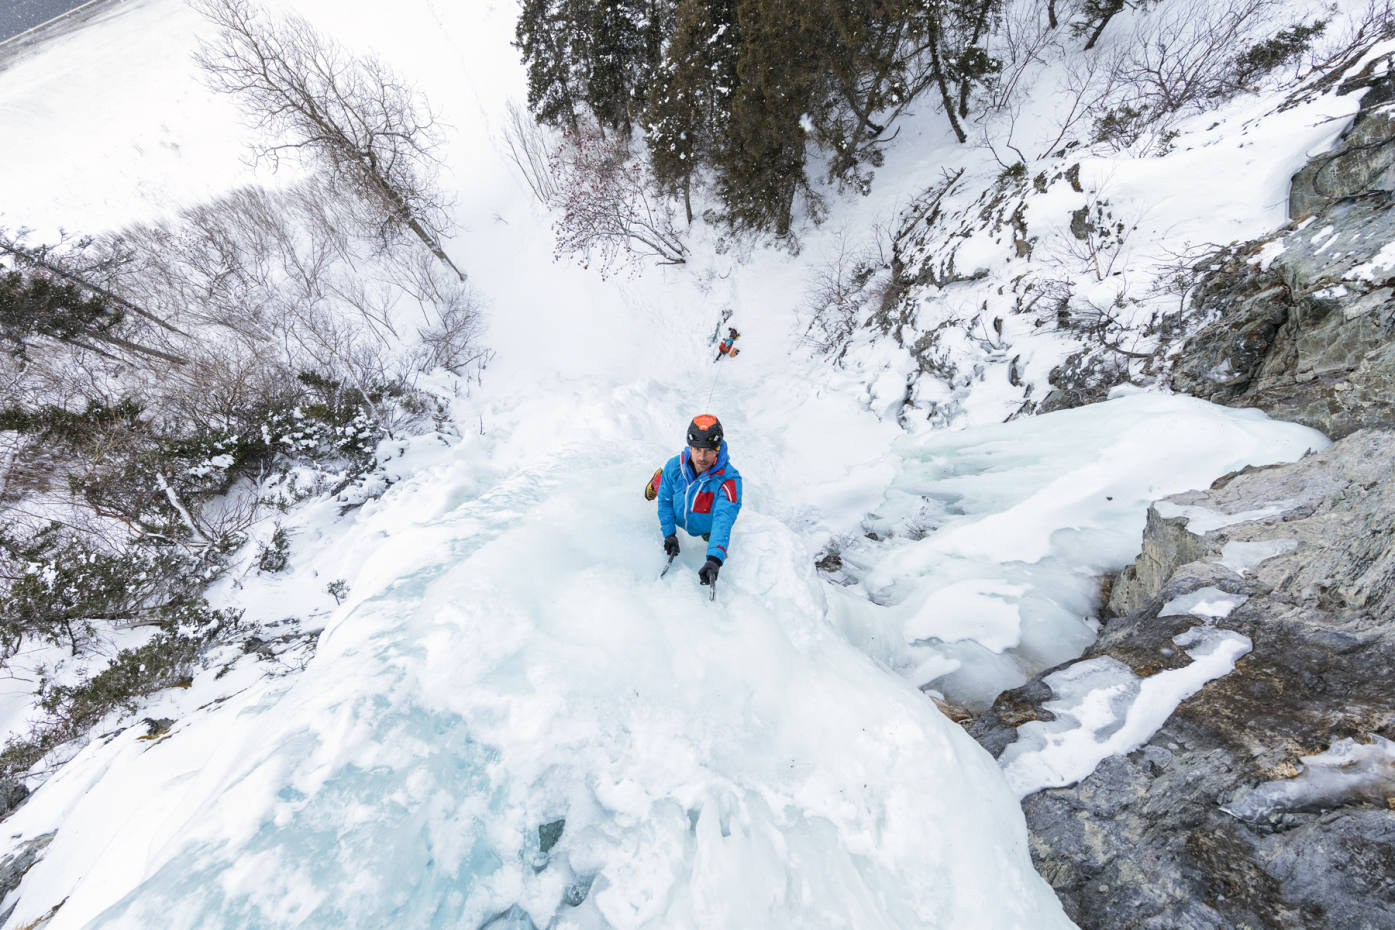 Hitting the extreme ice trails of Quebec